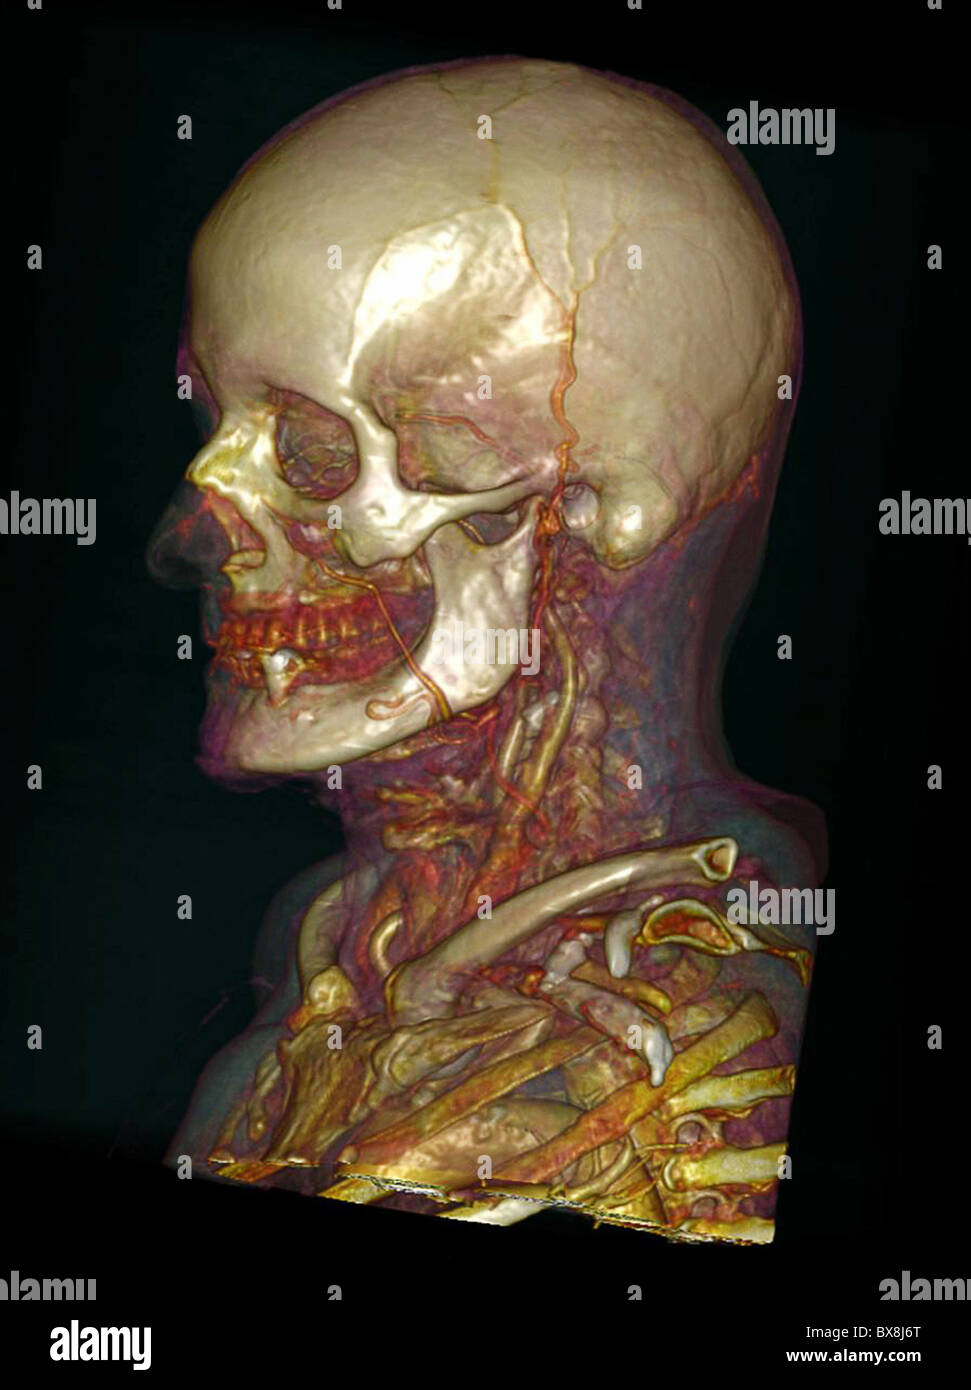 Ct Scan 3d Head Stock Photos & Ct Scan 3d Head Stock Images - Alamy